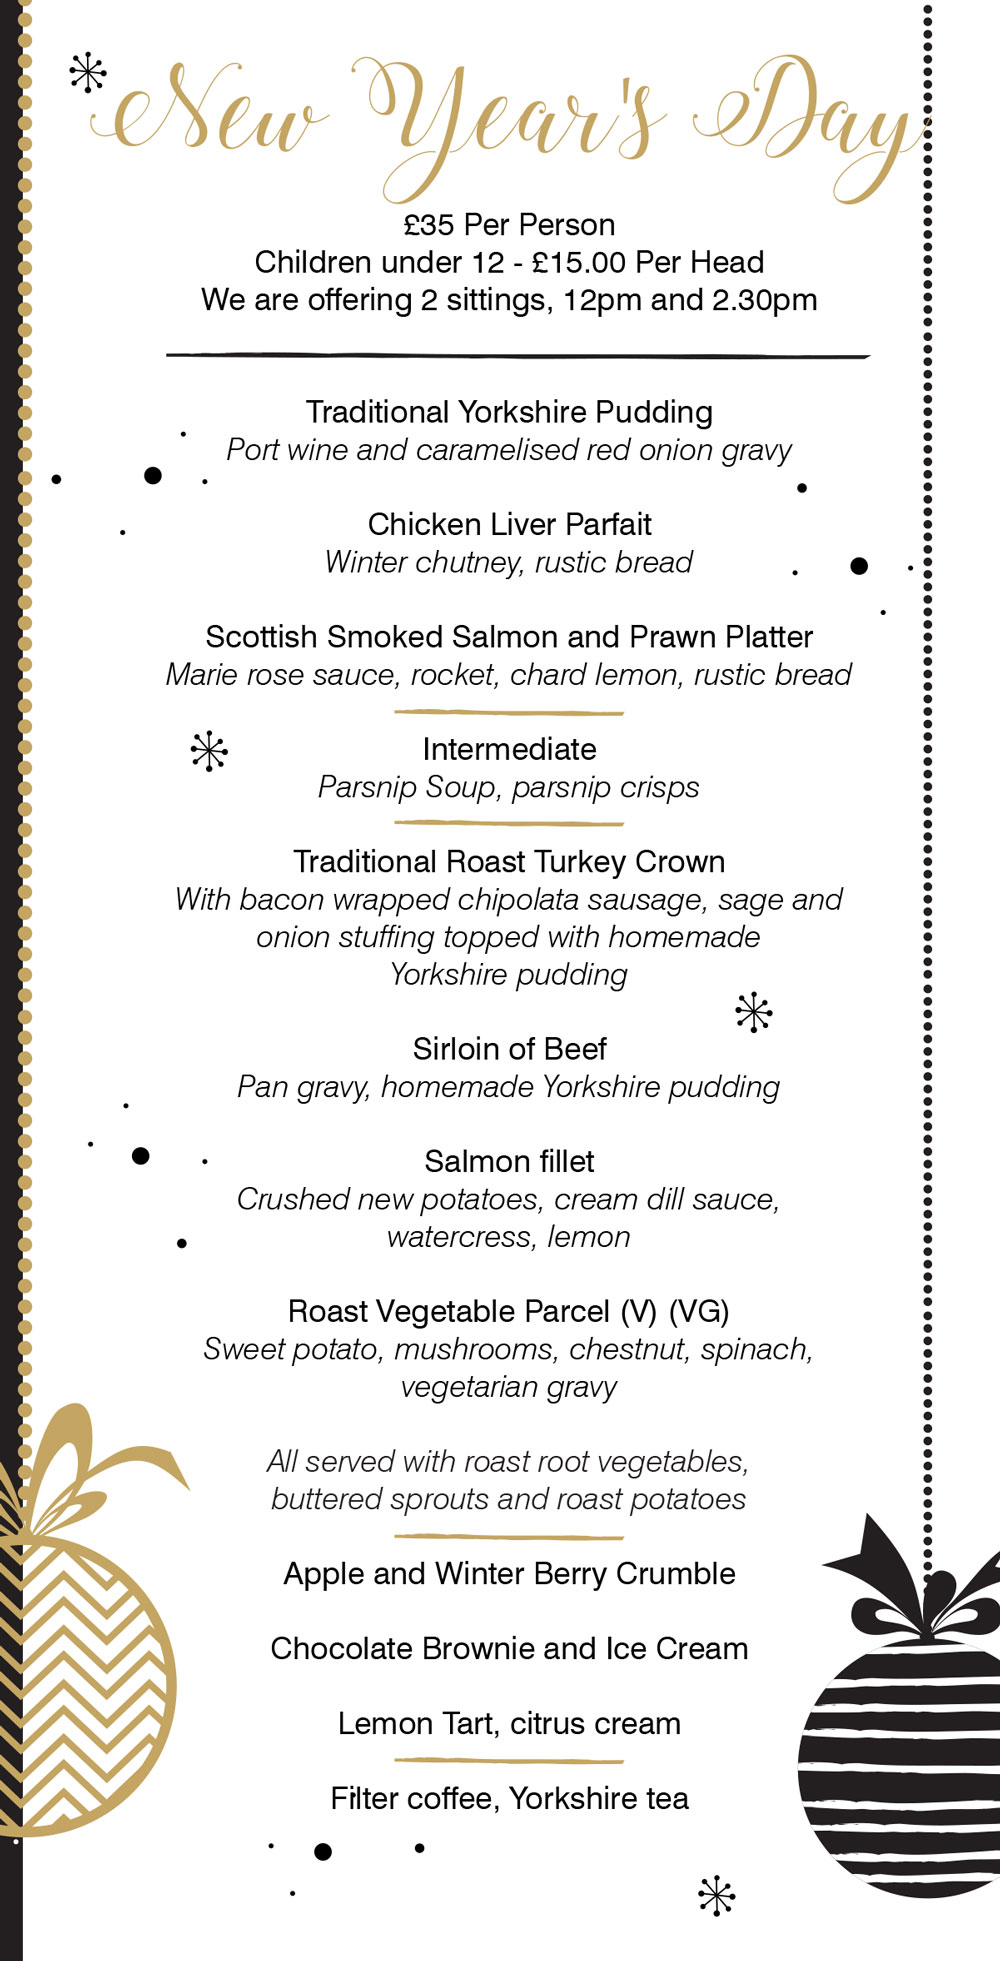 New year's day at the crown hotel bawtry